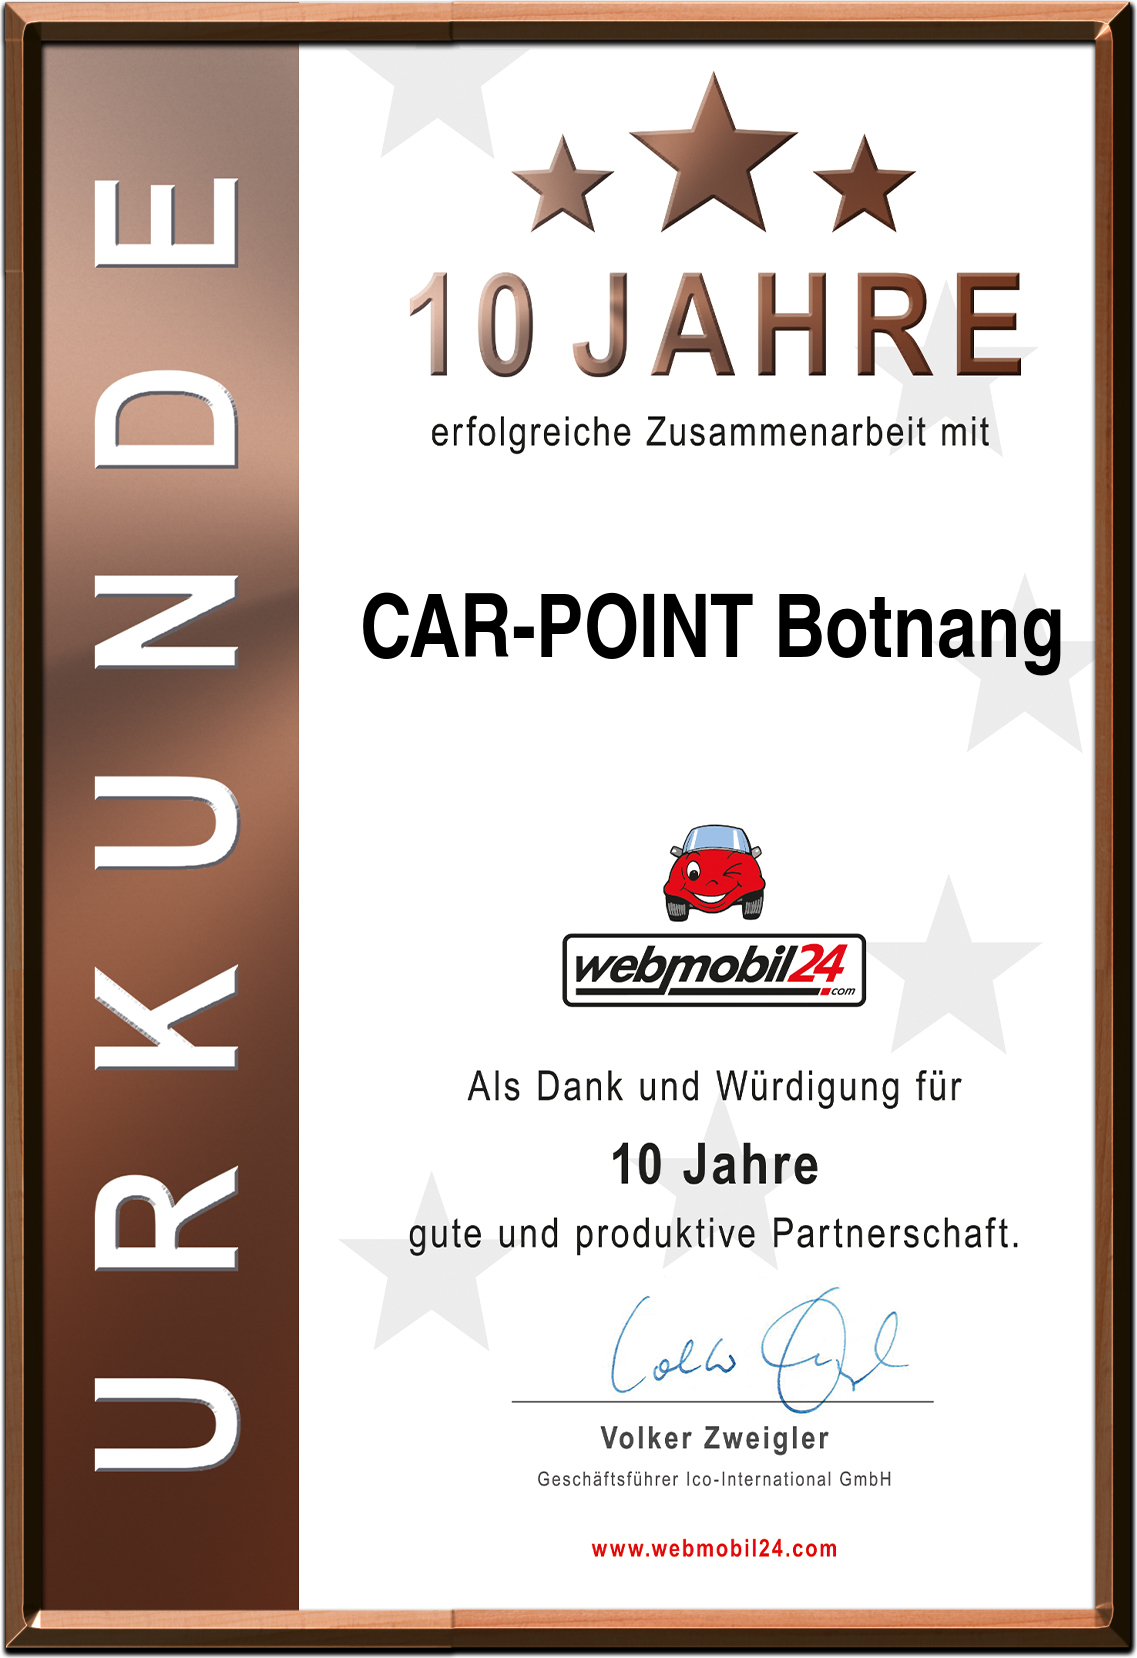 CAR-POINT Botnang